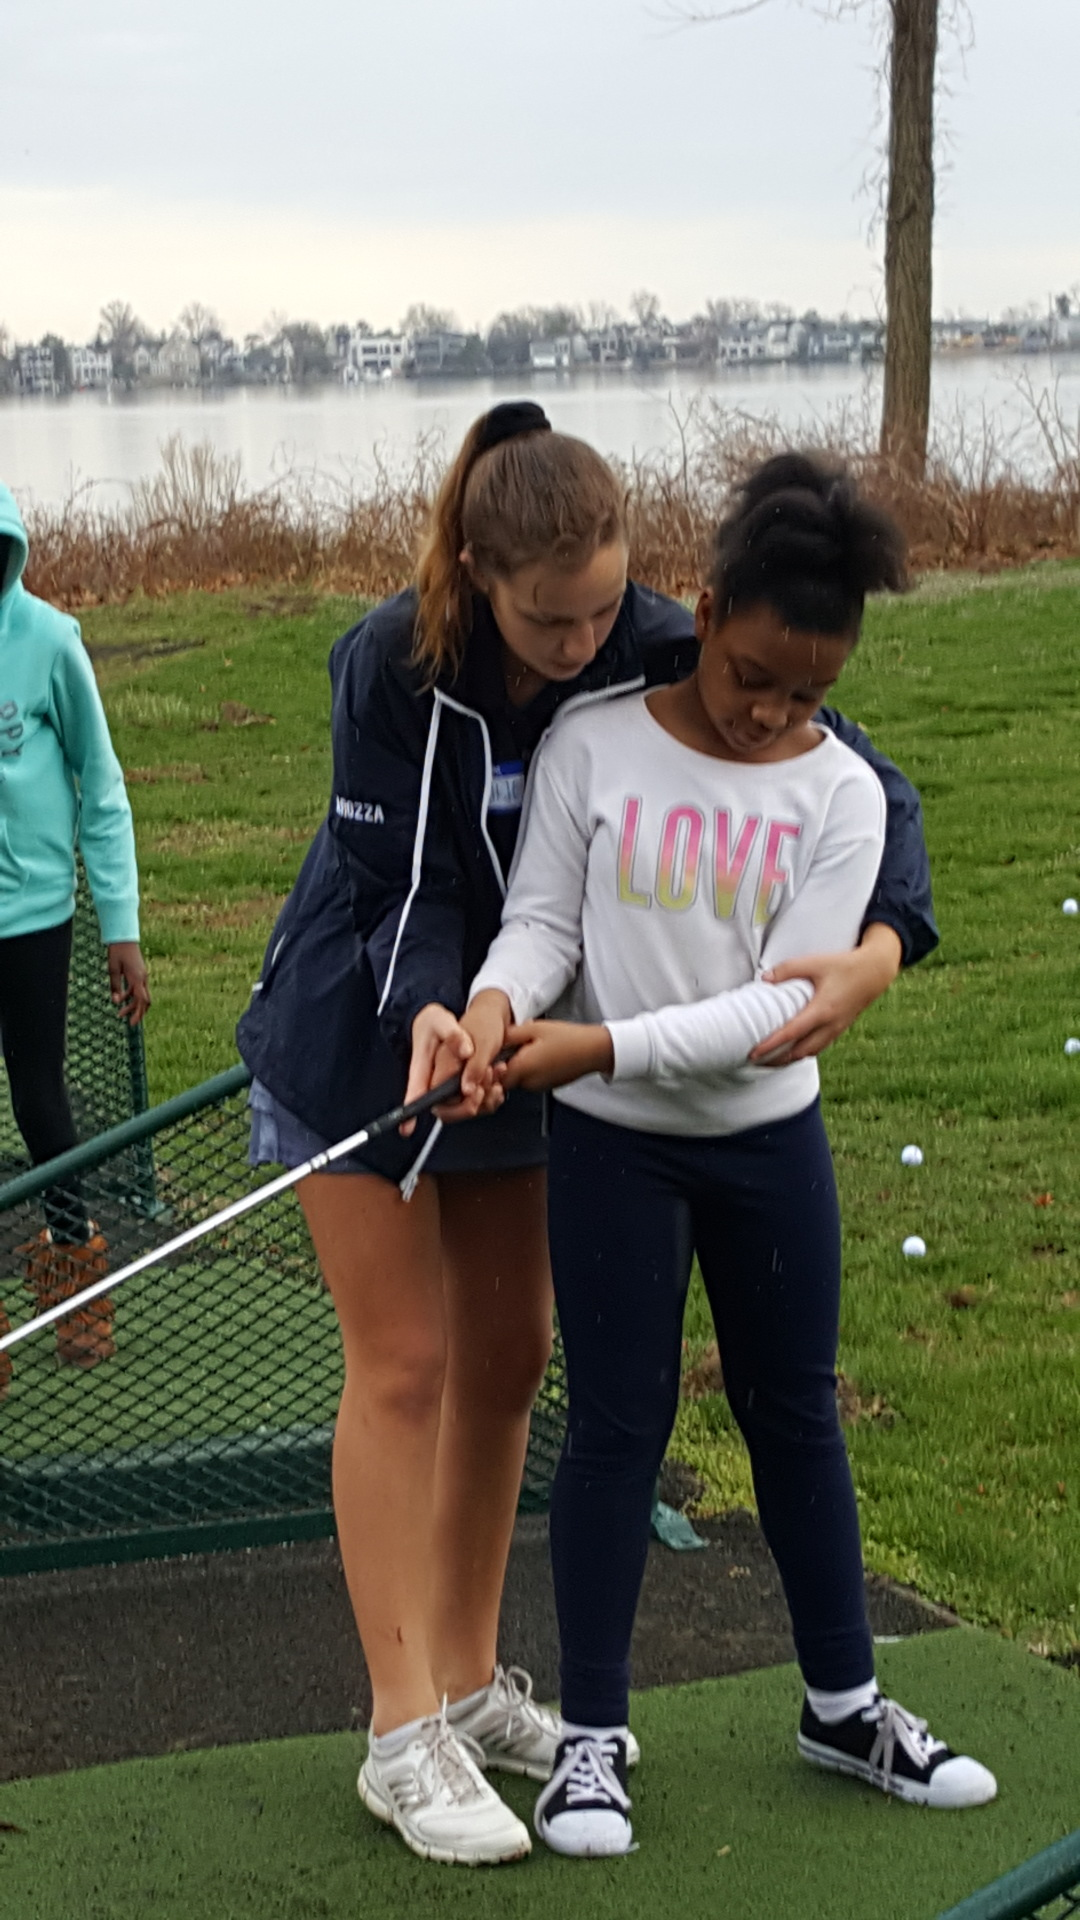 Sophie Carozza teaching Genesis how to hit